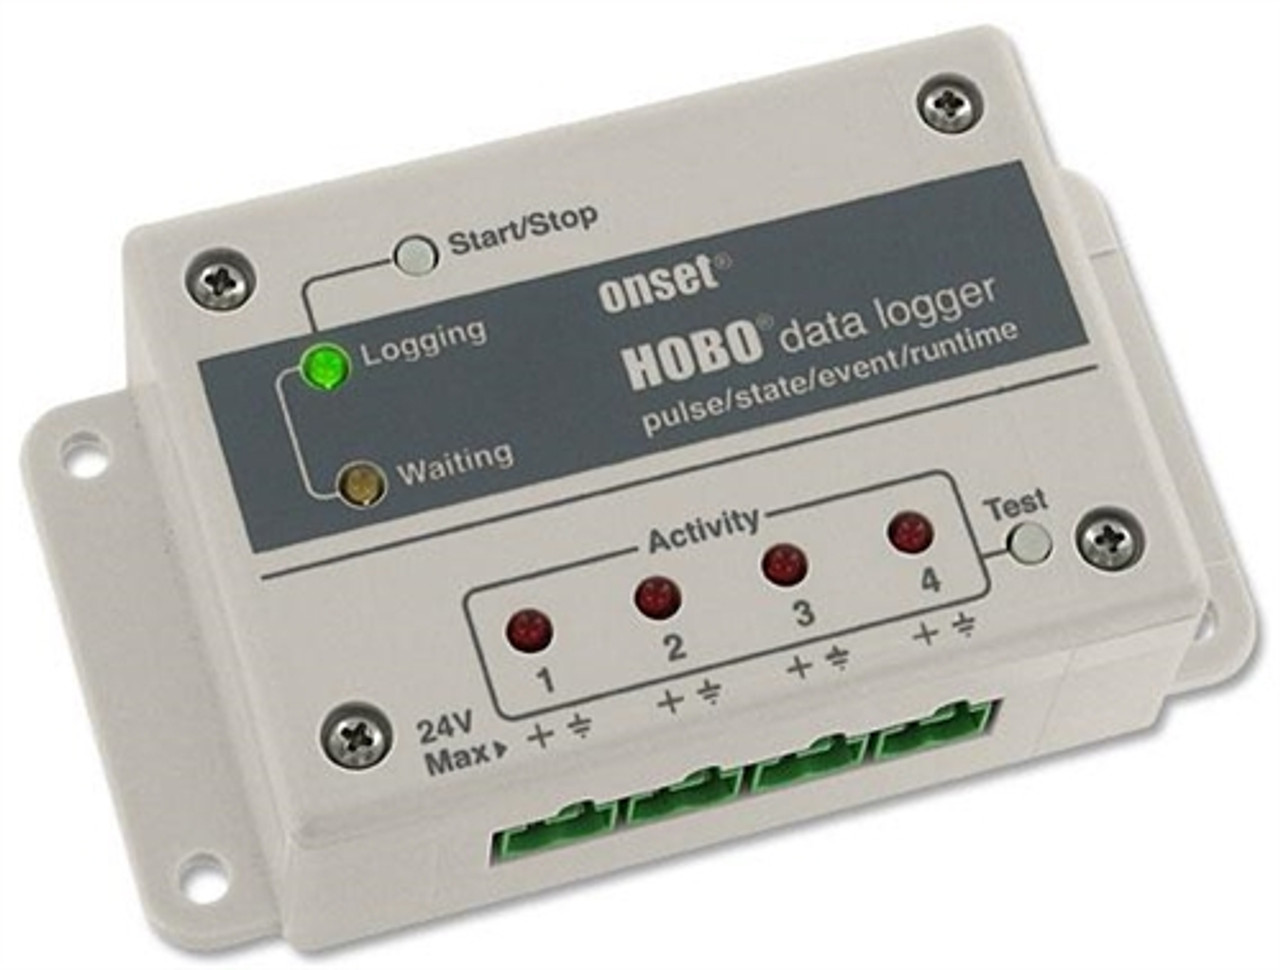 Onset HOBO 4-Channel Pulse Input Logger 4MB - UX120-017M